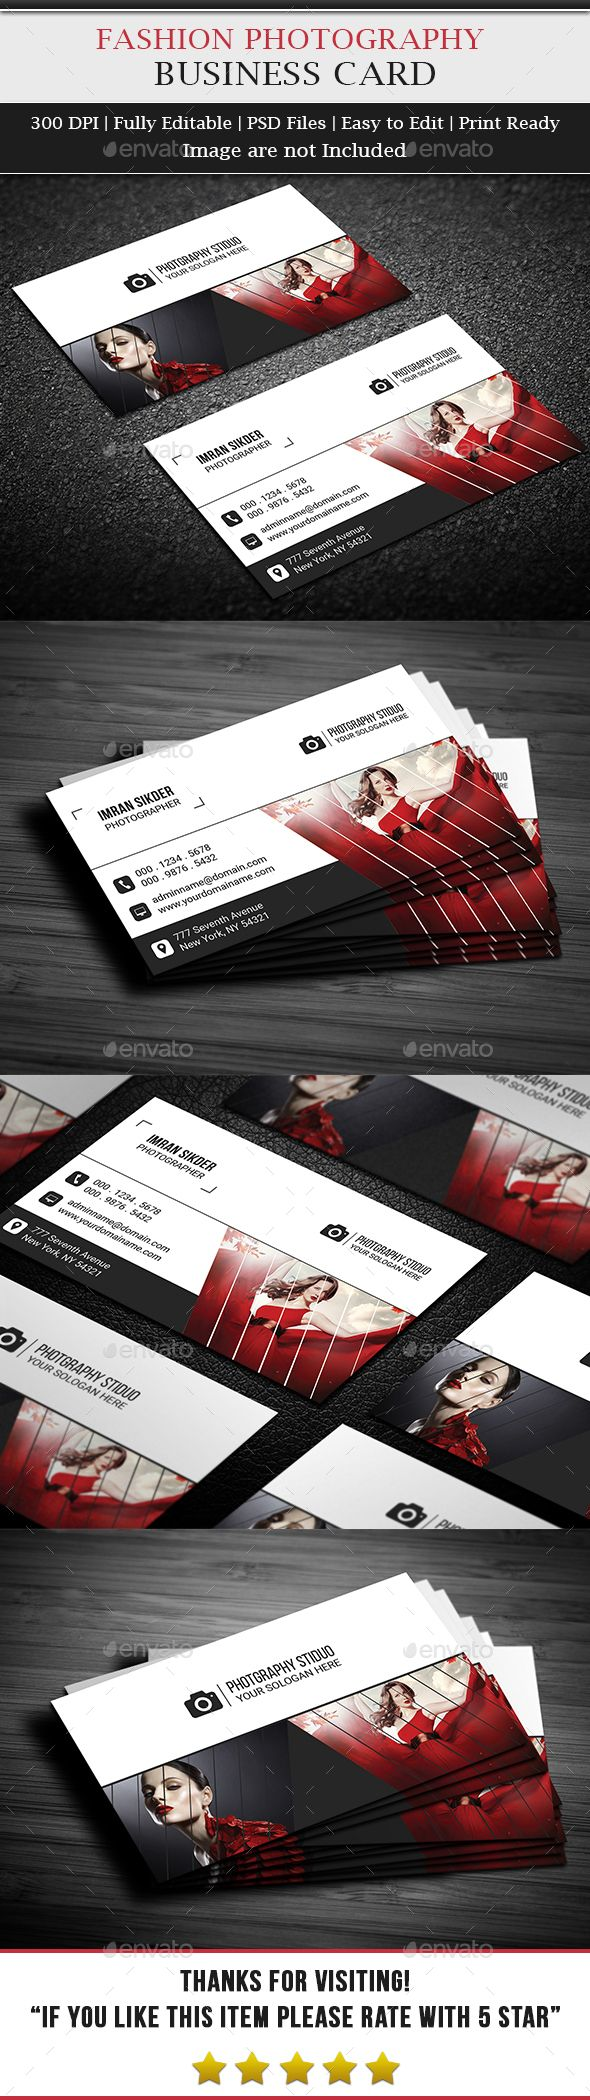 Fashion Photography Business Card Template PSD #design Download: http://graphicriver.net/item/fashion-photography-business-card/13378104?ref=ksioks